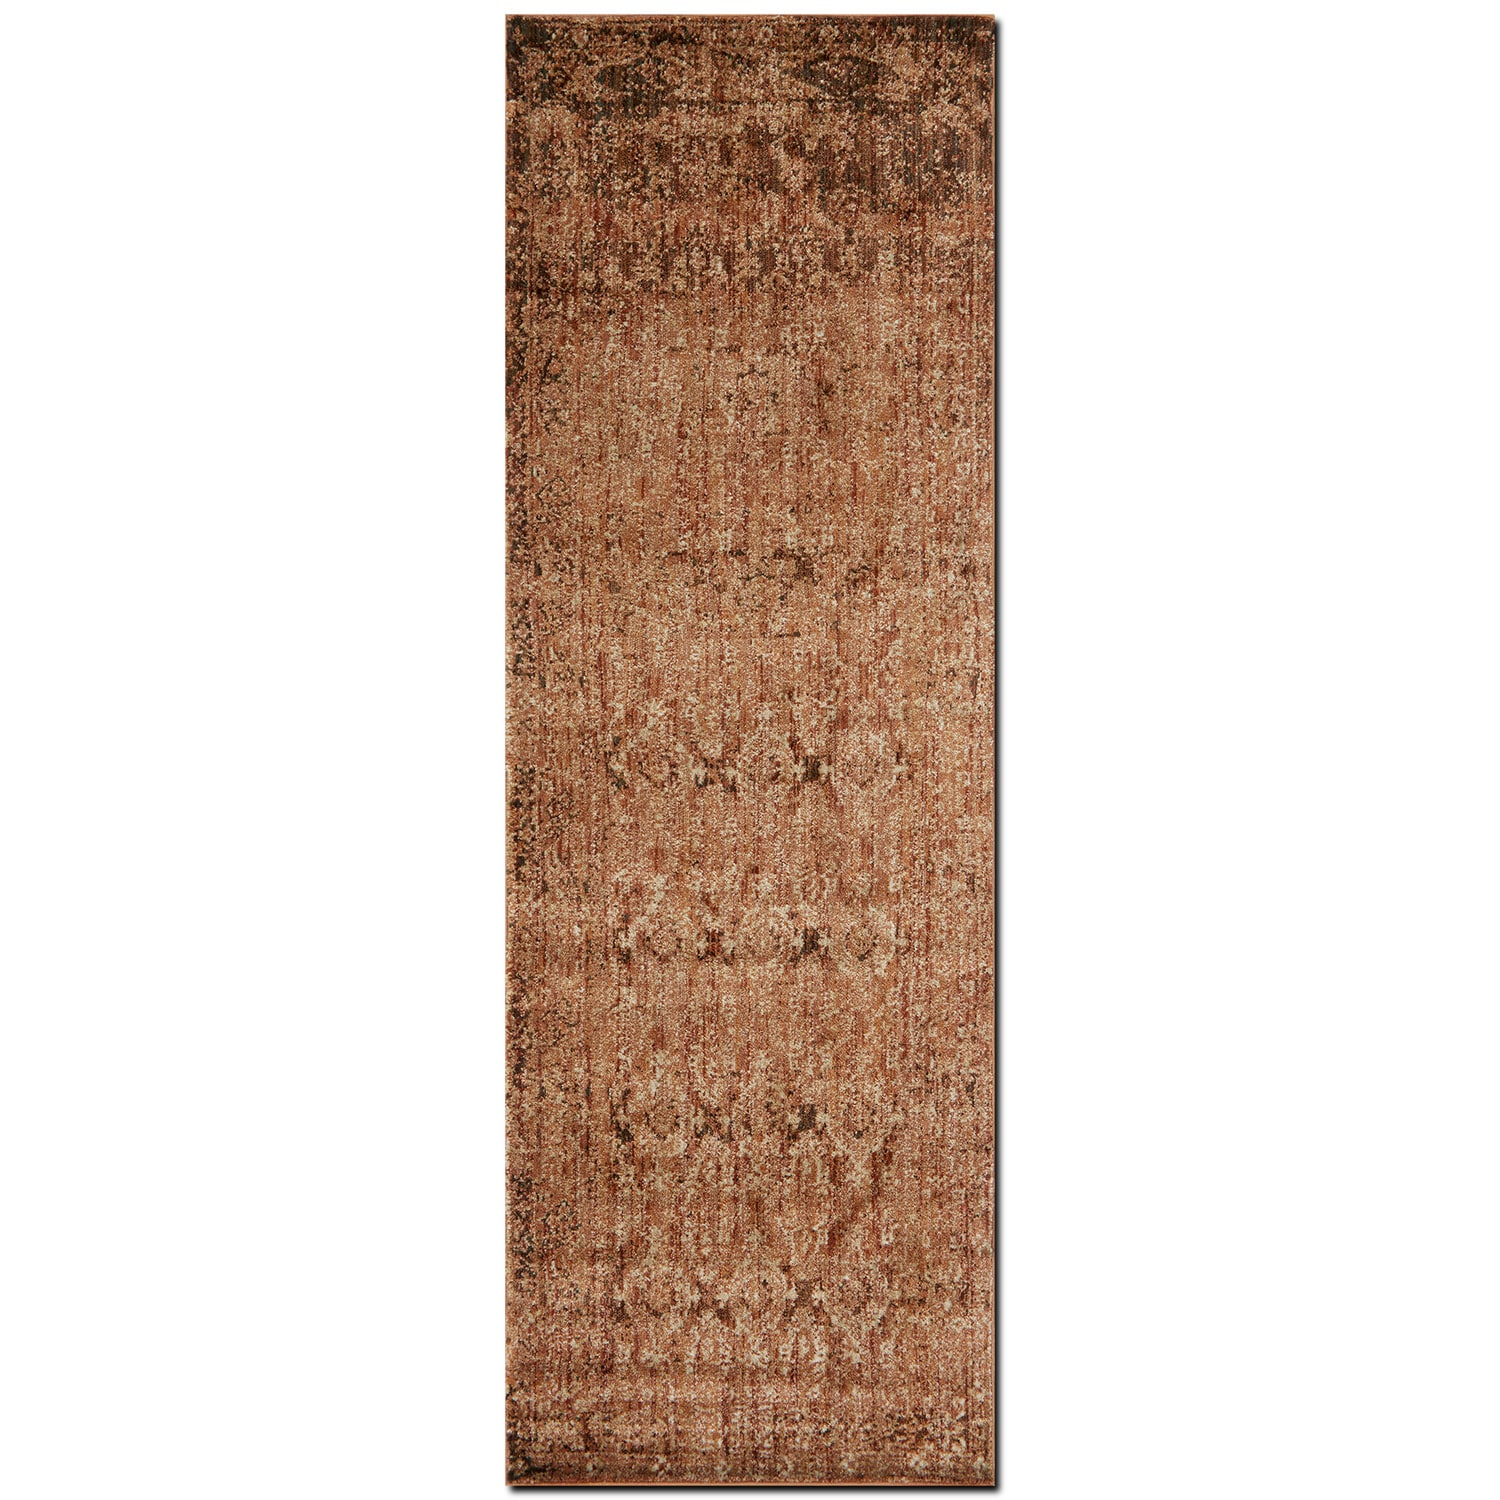 Rugs - Kivi 3' x 10' Rug - Sand and Copper